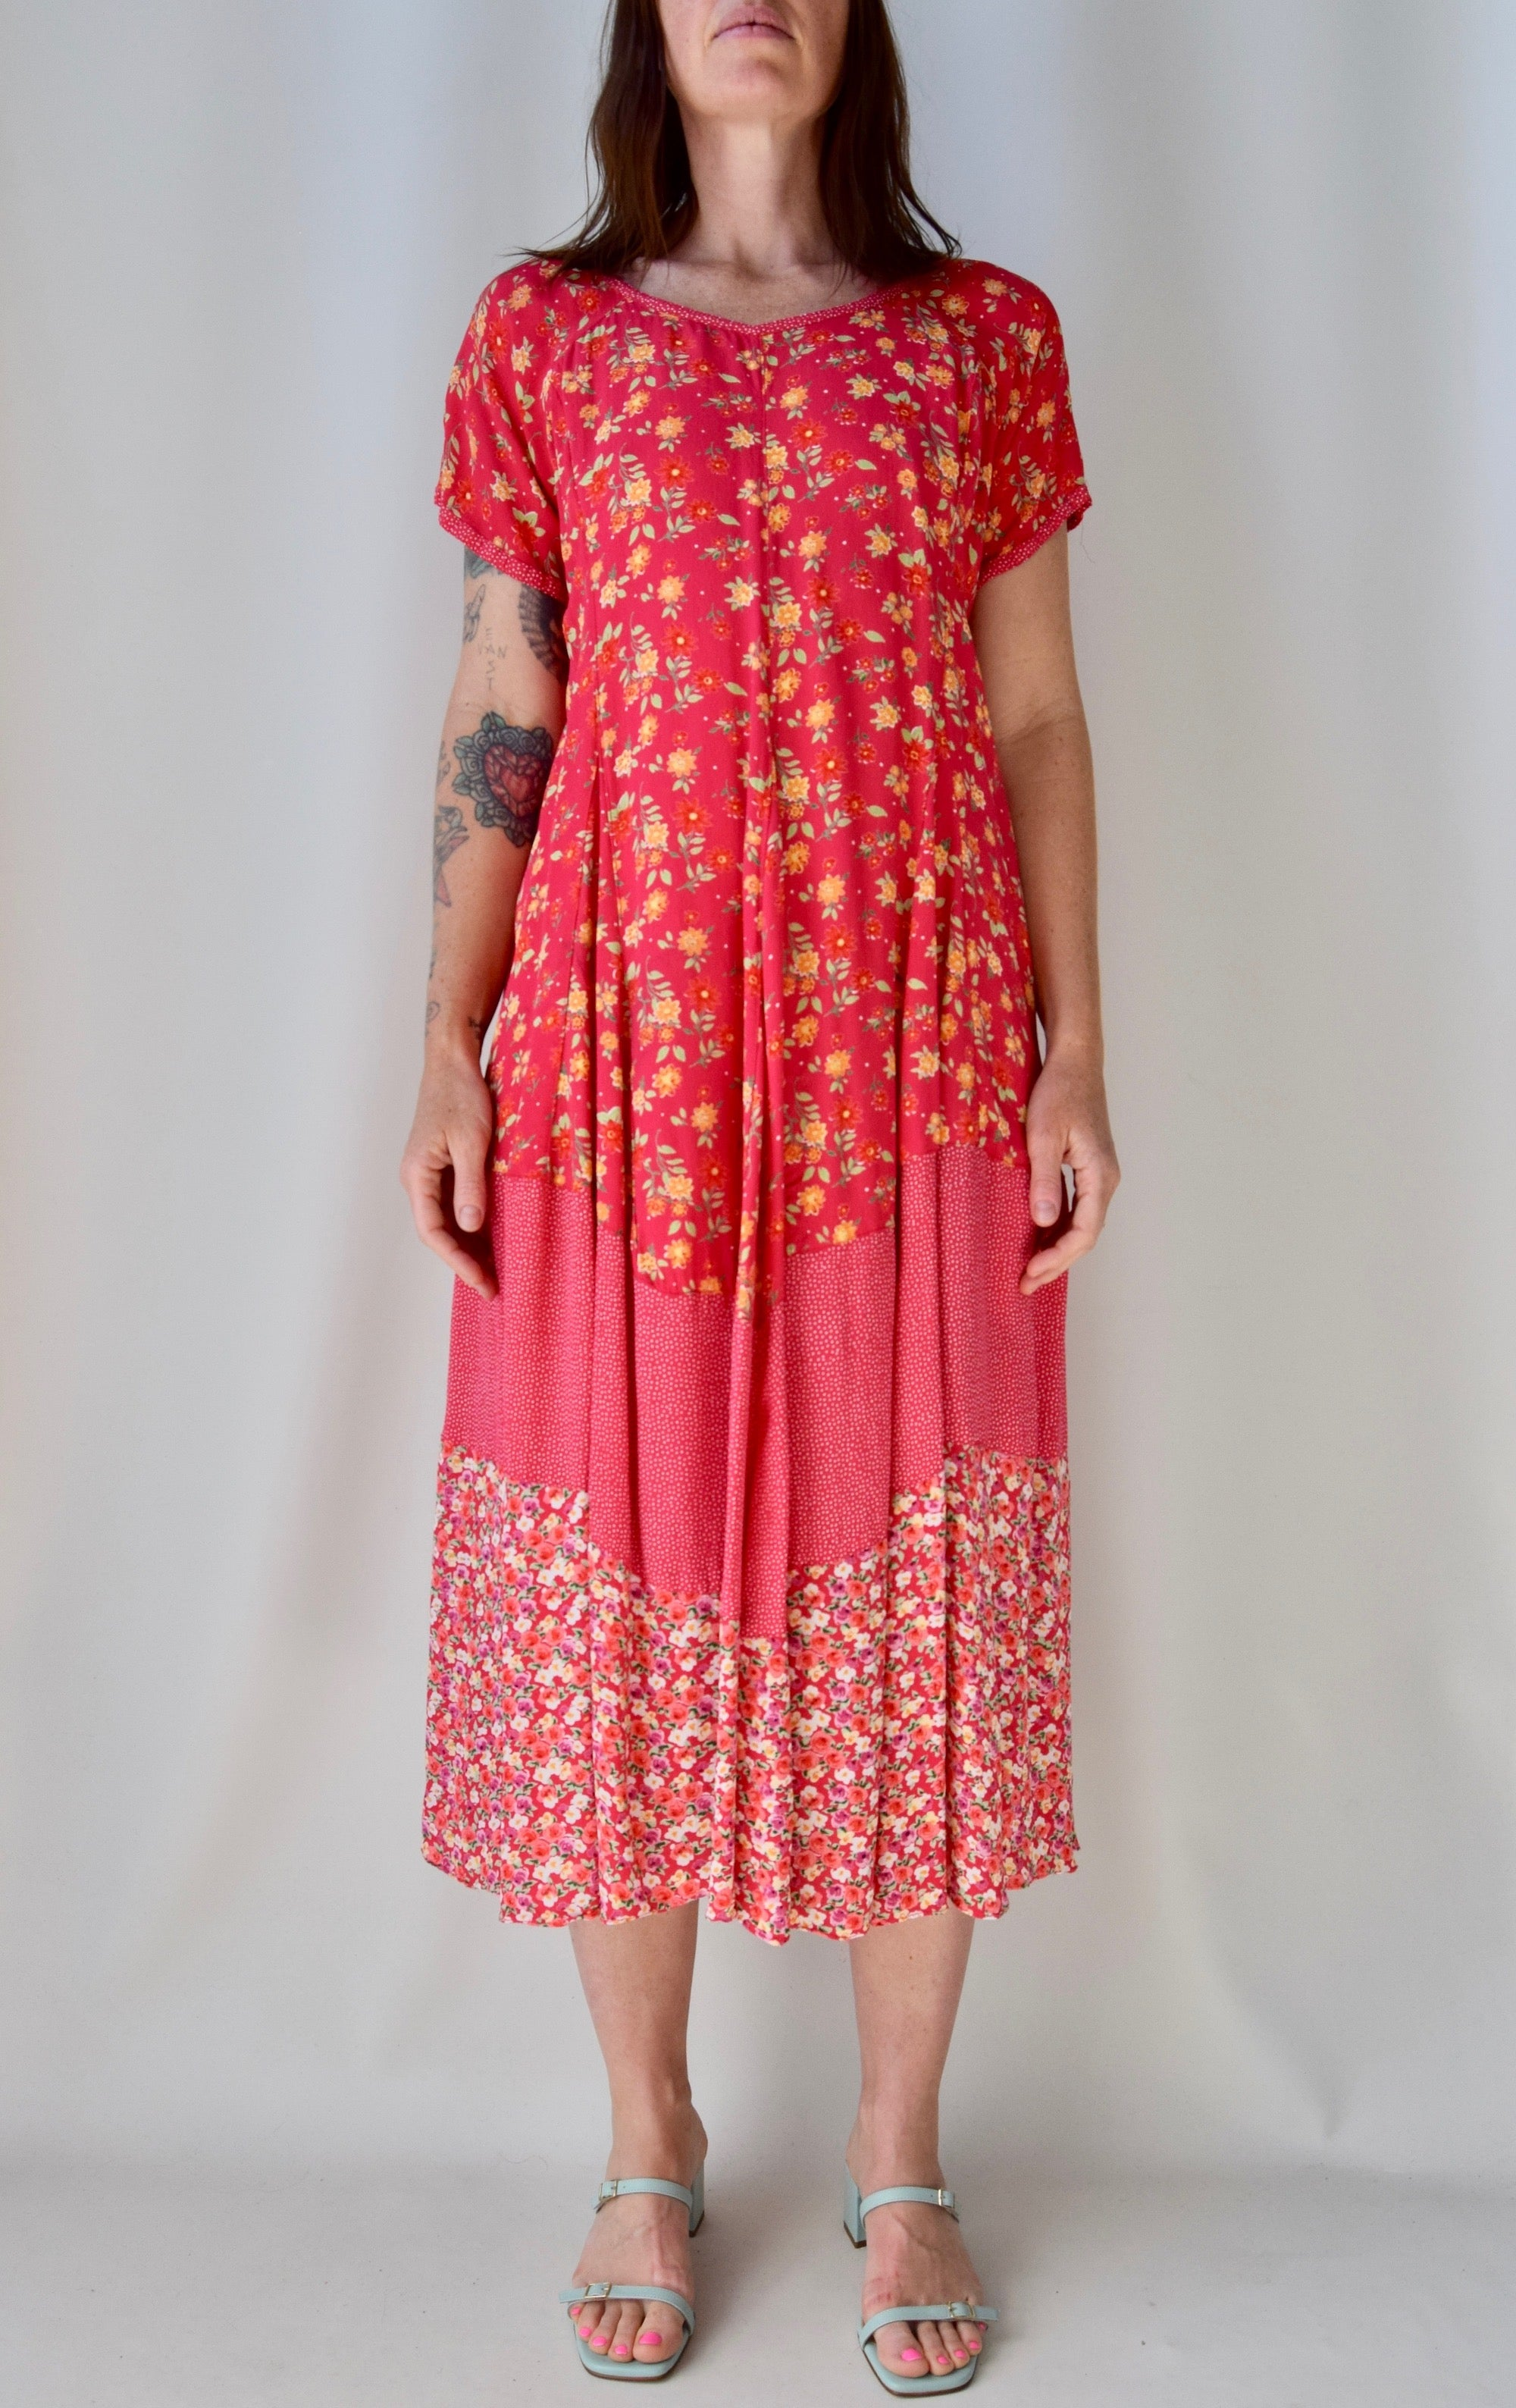 Pink Rayon Multi Floral Print Dress